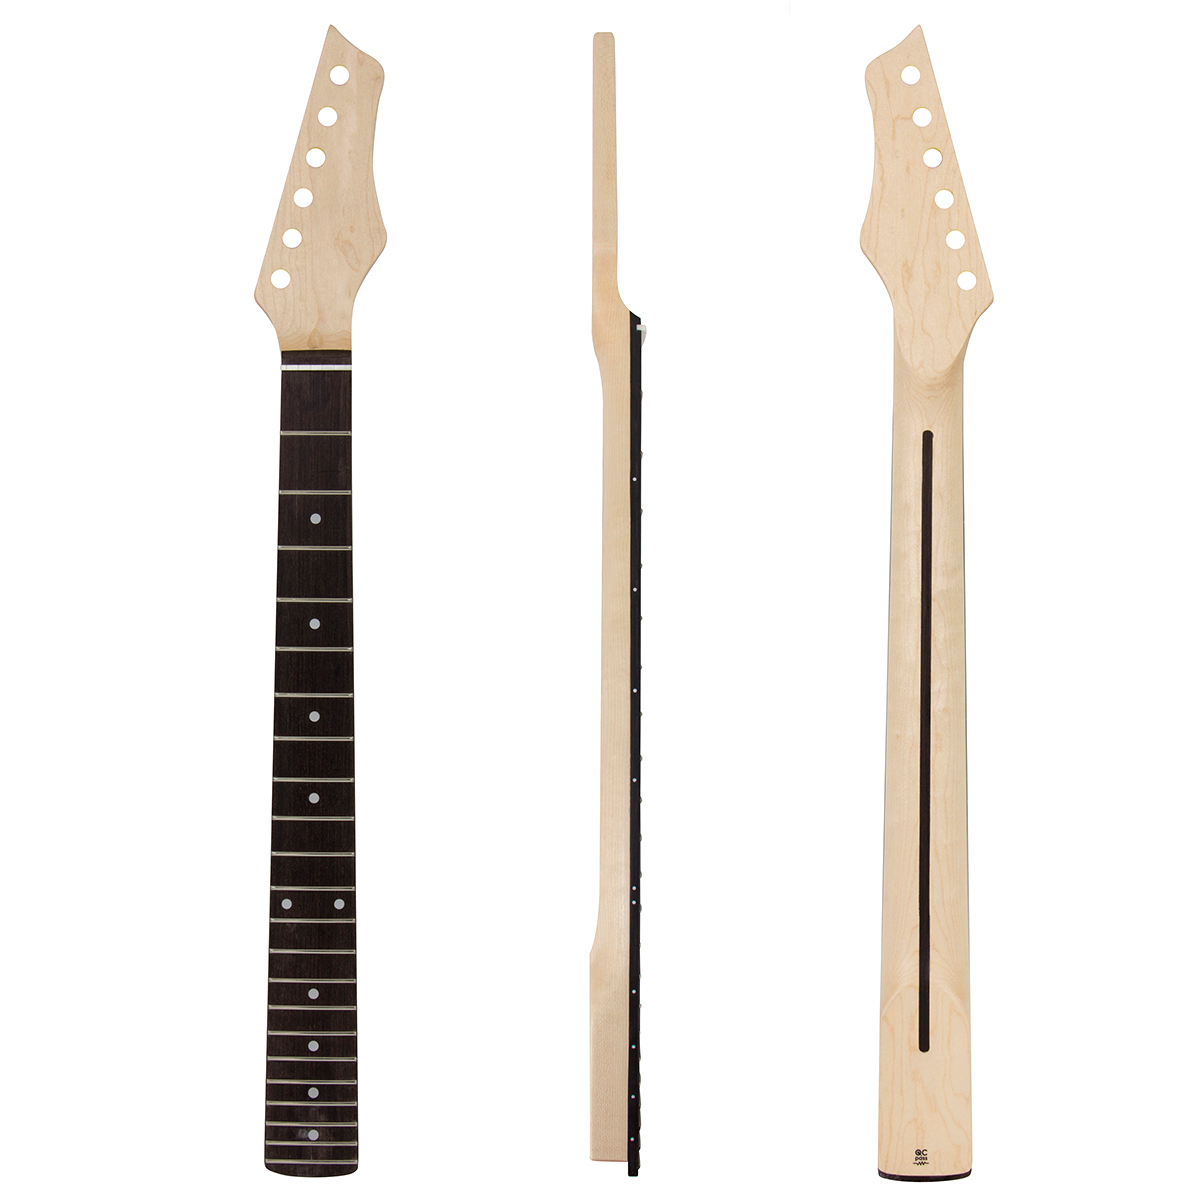 Kmise Electric Guitar Neck Canada Maple 22 Frets HPL Fingerboard Bolt on C Shape with Back Inlay Clear Satin